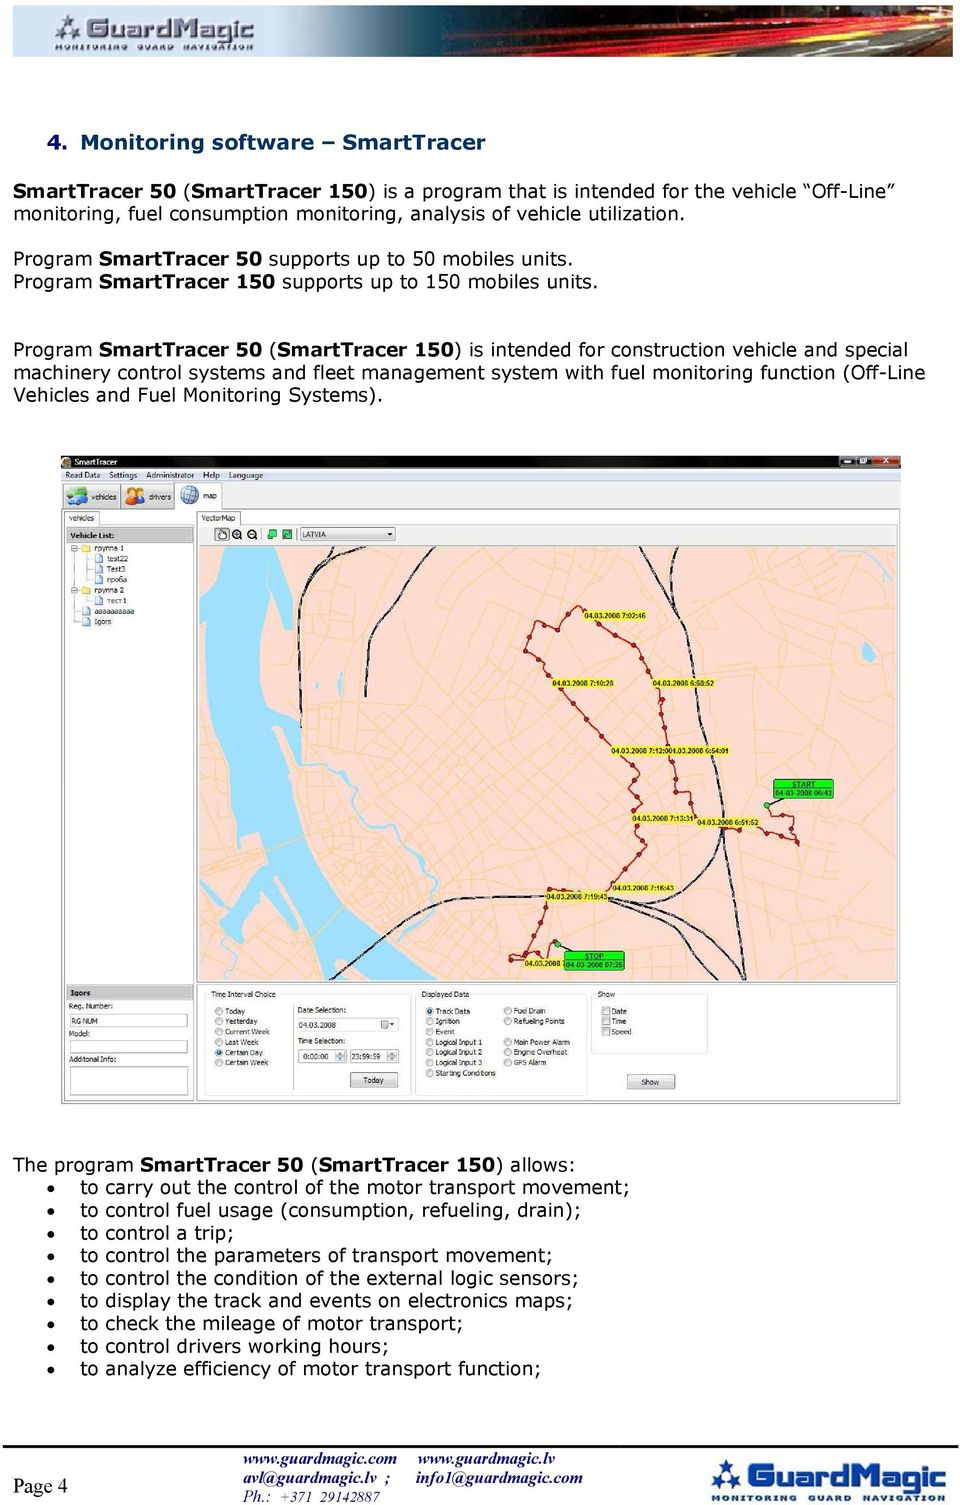 Program SmartTracer 50 (SmartTracer 150) is intended for construction vehicle and special machinery control systems and fleet management system with fuel monitoring function (Off-Line Vehicles and